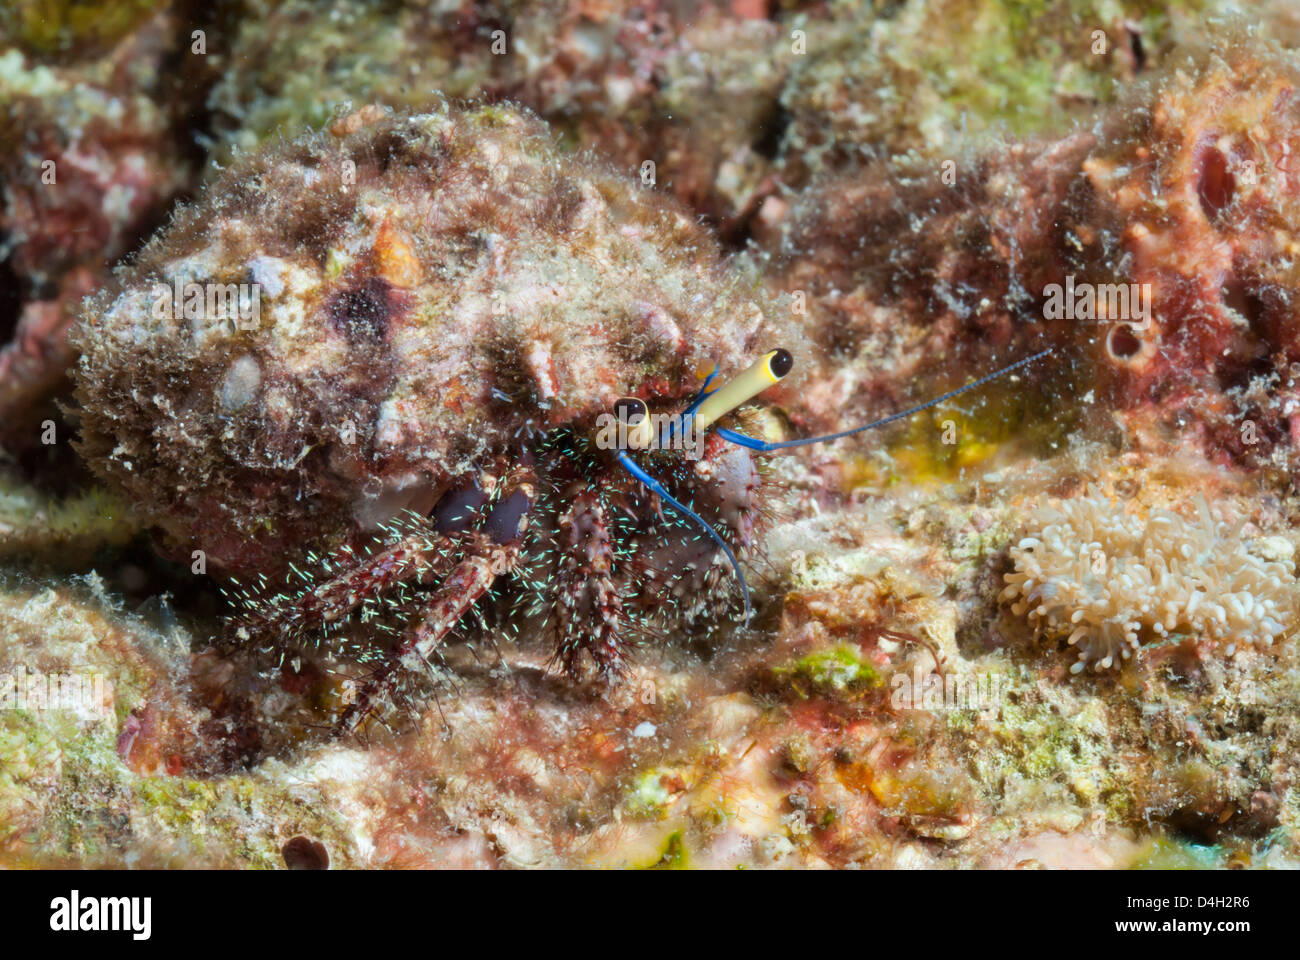 Hairy hermit crab (Aniculus elegans), Southern Thailand, Andaman Sea, Indian Ocean, Southeast Asia - Stock Image